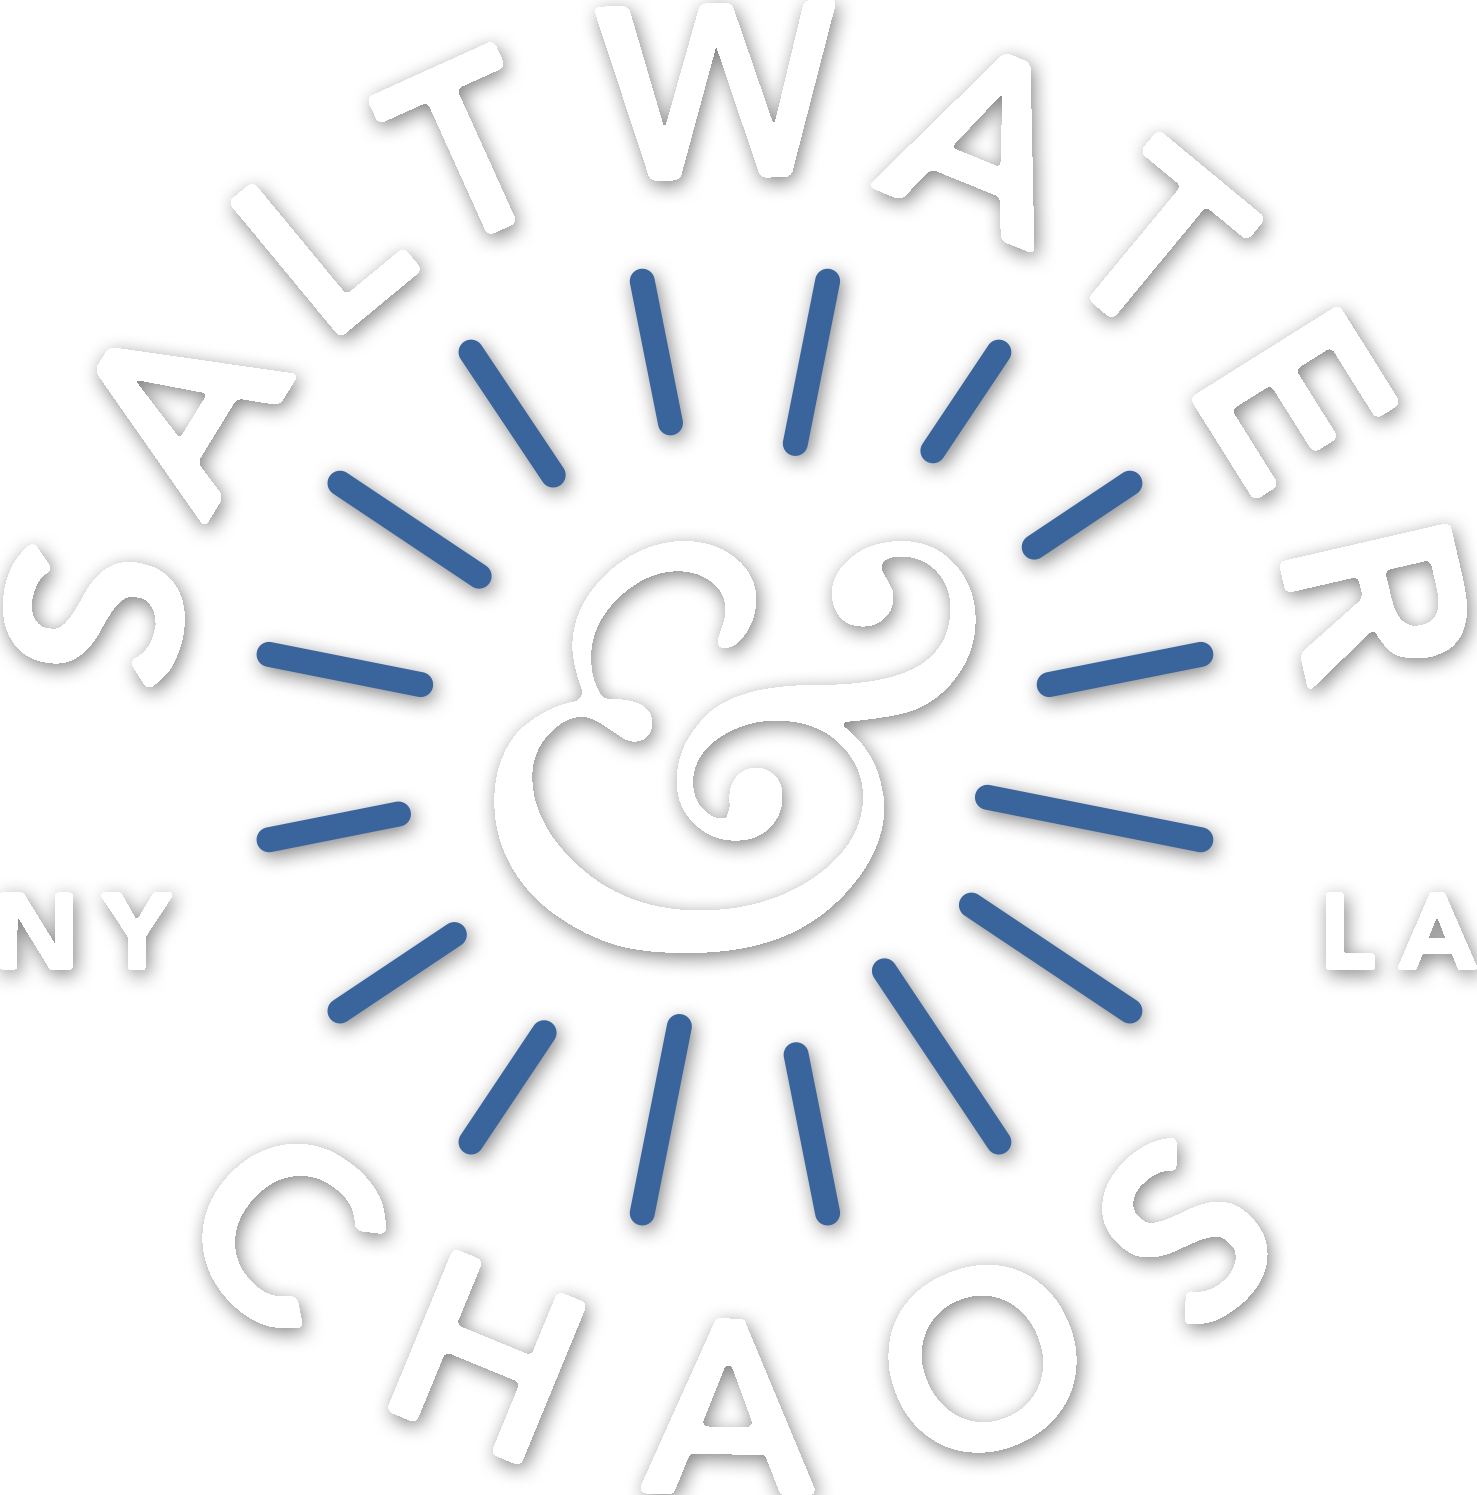 Saltwater & Chaos